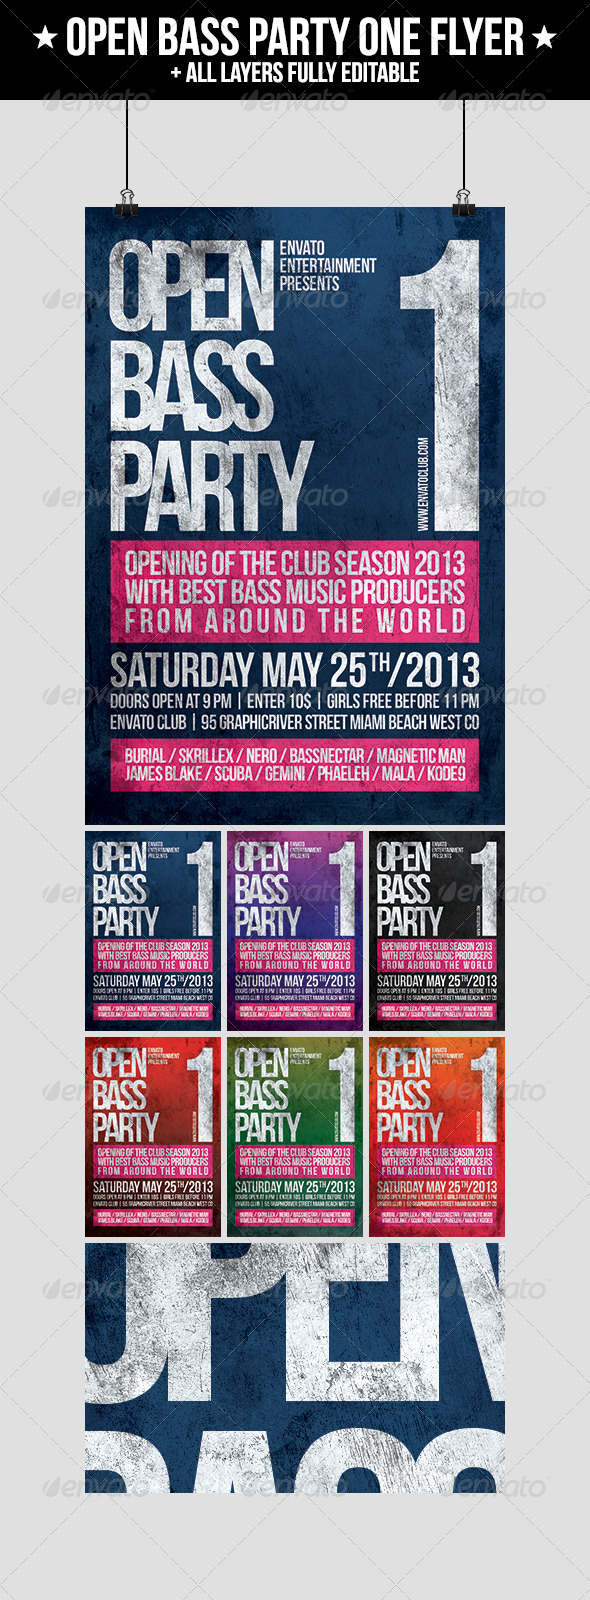 Open Bass Party One Flyer - Clubs & Parties Events